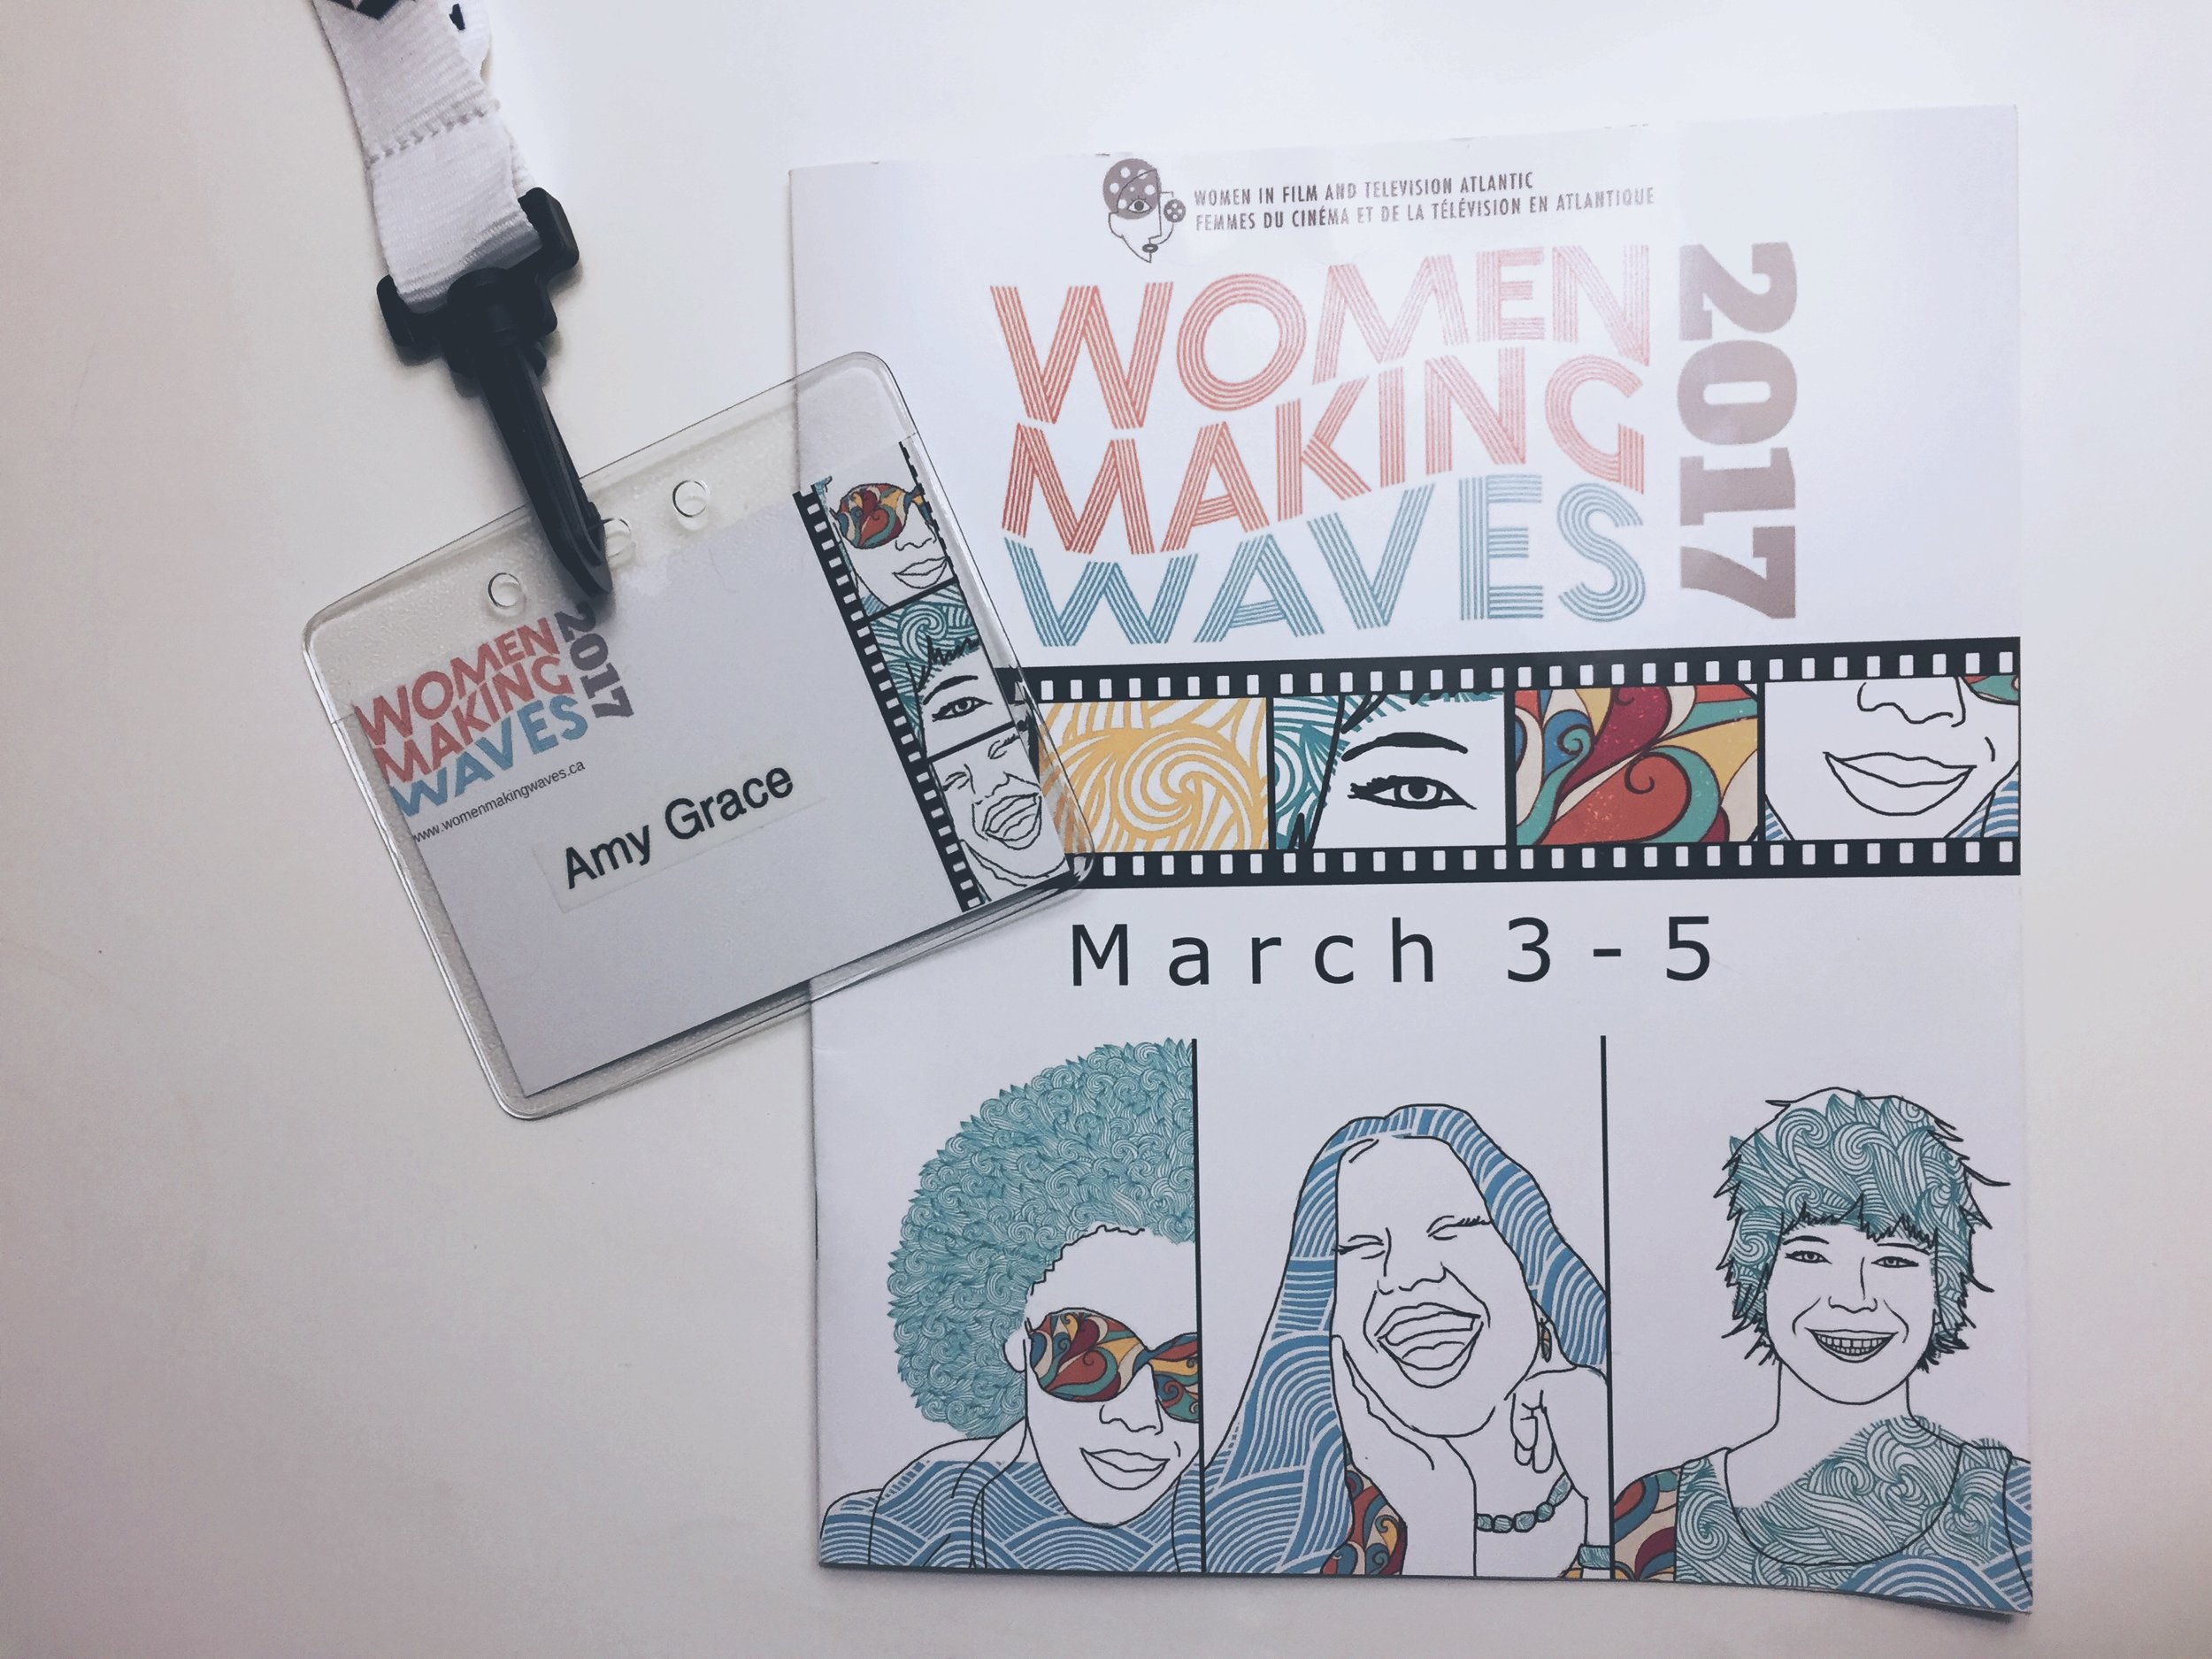 Being accepted into the New Waves Program gave the opportunity to attend the Women Making Waves Conference. Utterly inspiring.